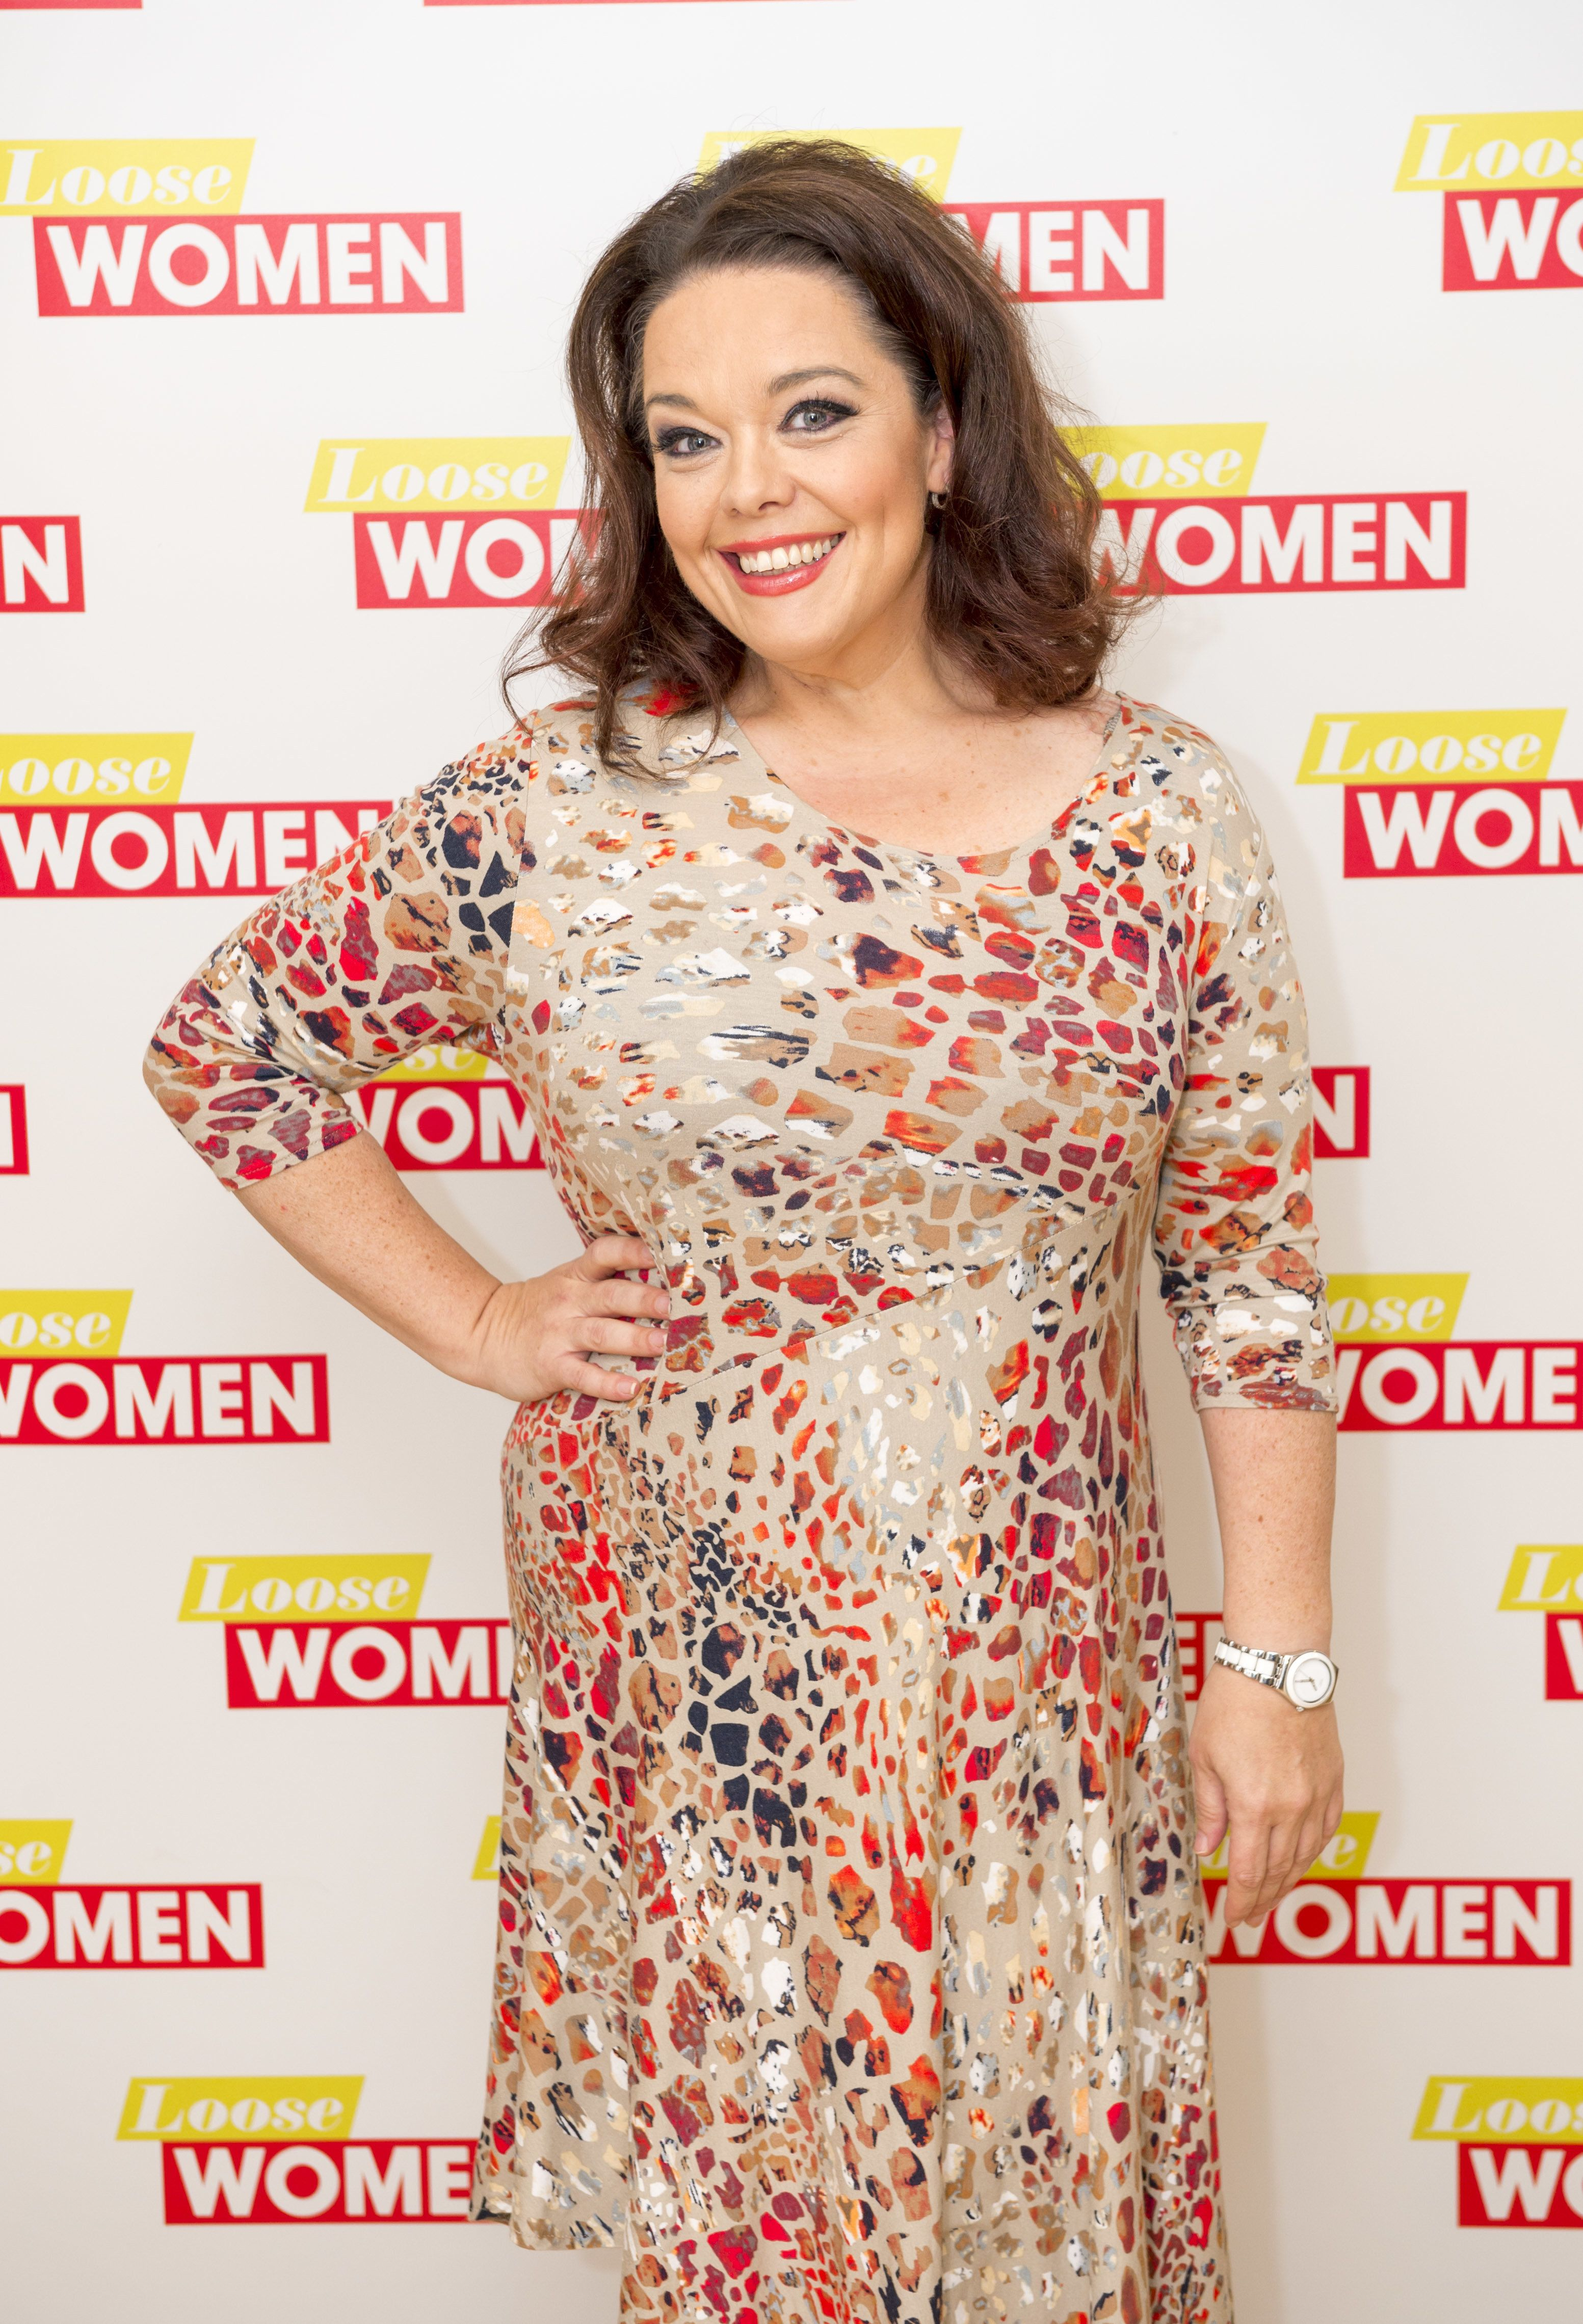 'Loose Women' Welcomes Three New Panellists Into The